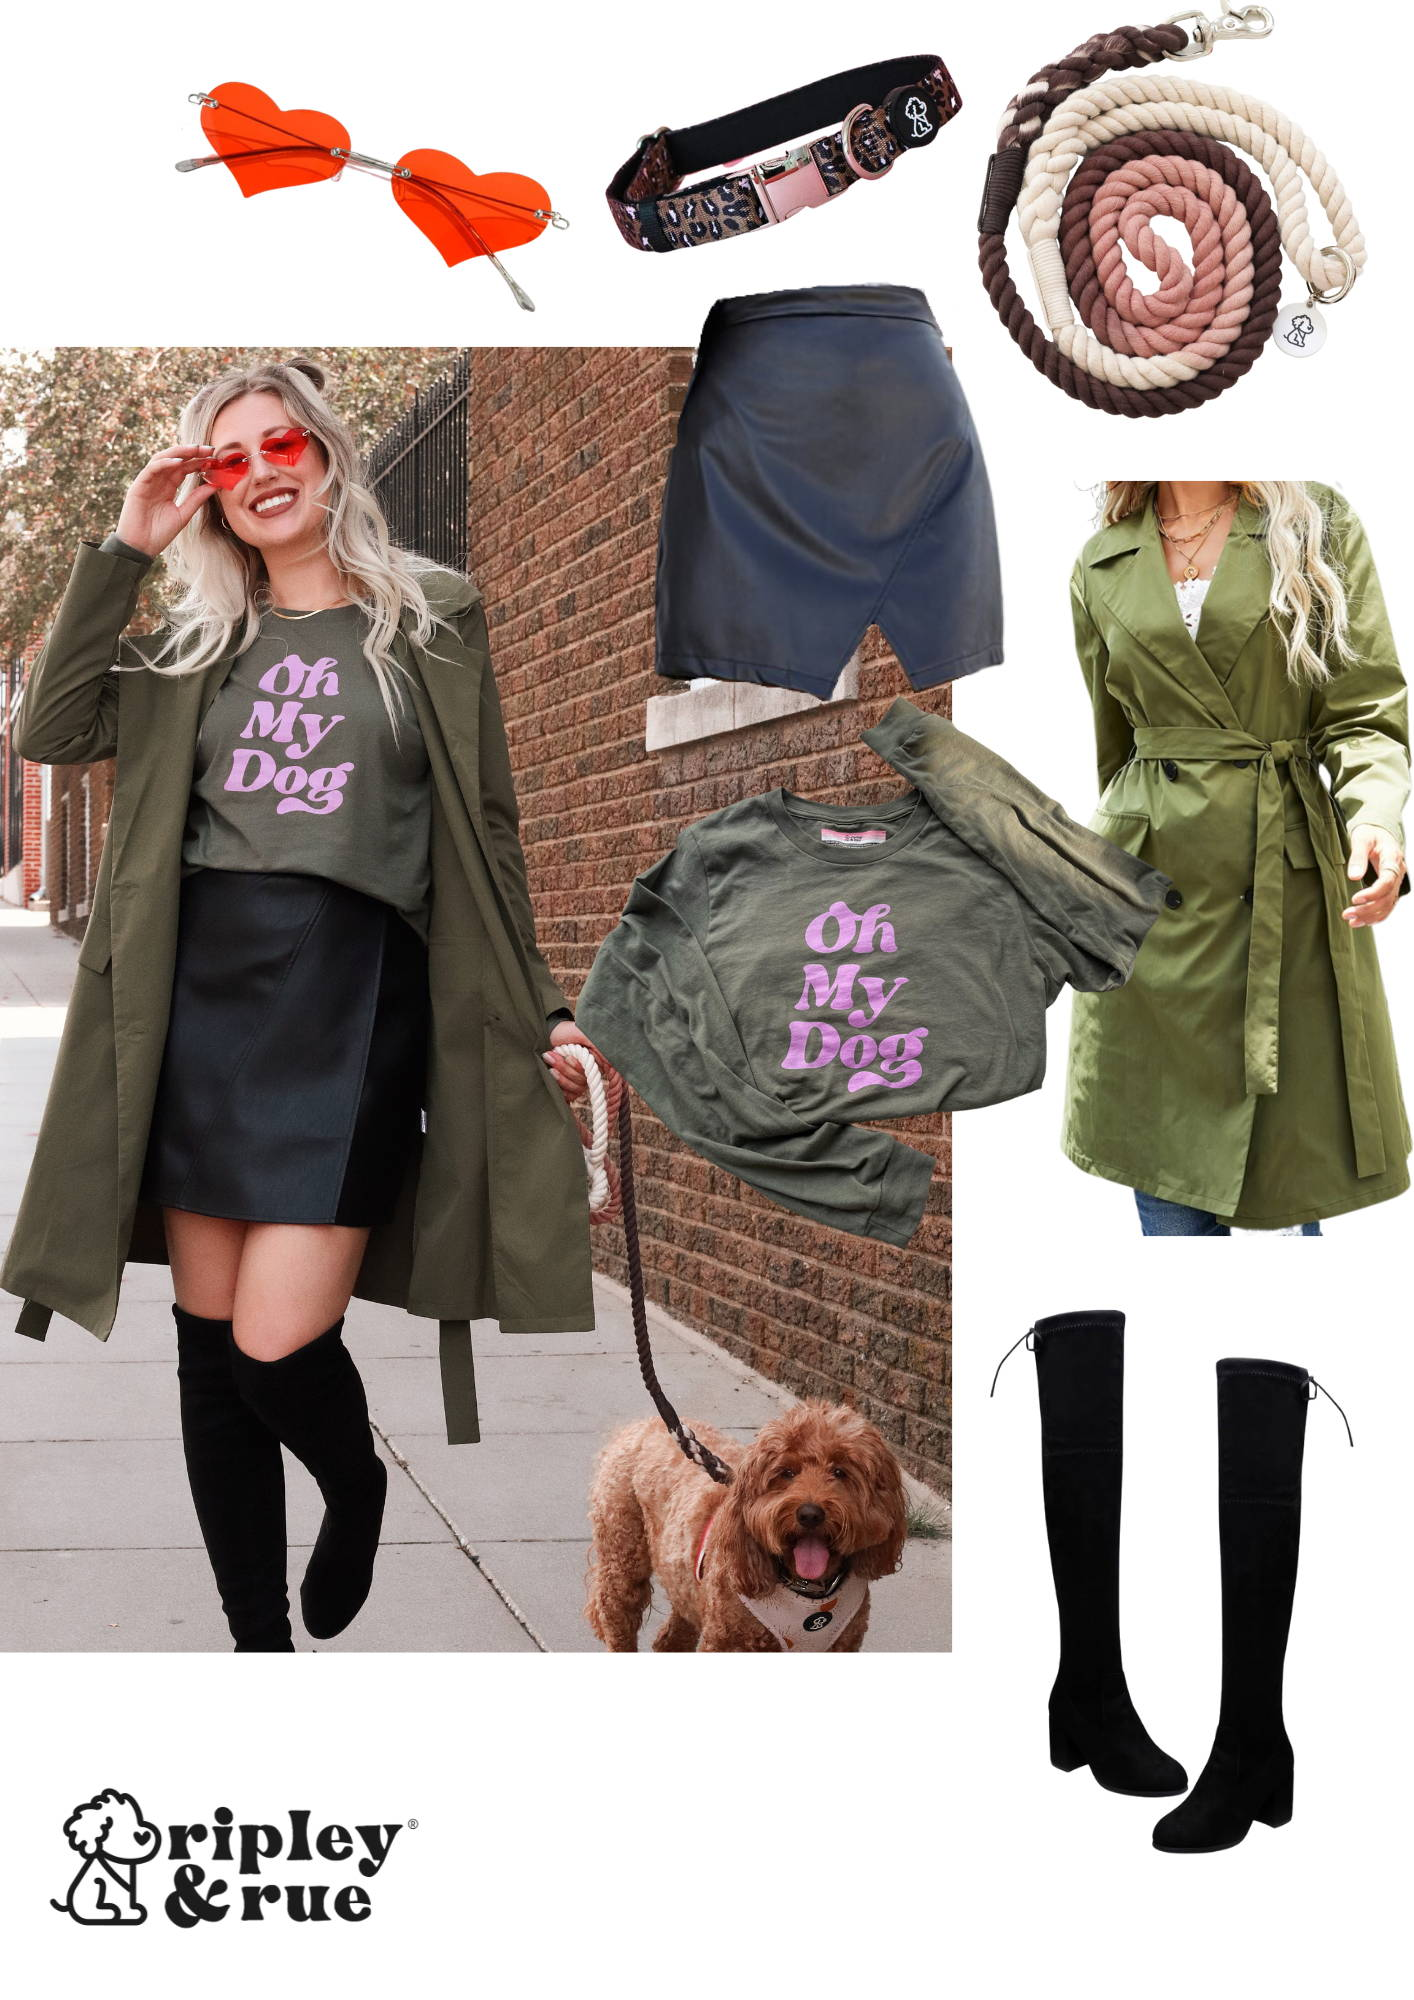 A fashionable style guide for dog moms living the city life. Shop all things dog mom at Ripley & Rue, and check out how we spiced up our favorites for fall! #falllooks #dogmomfashion #dogmomstyle #citylooks #cityfashion #citydogmom #dogmomlife #dogmom #dogmoms #dogfashion #stylish #styleguide #trendingfashion